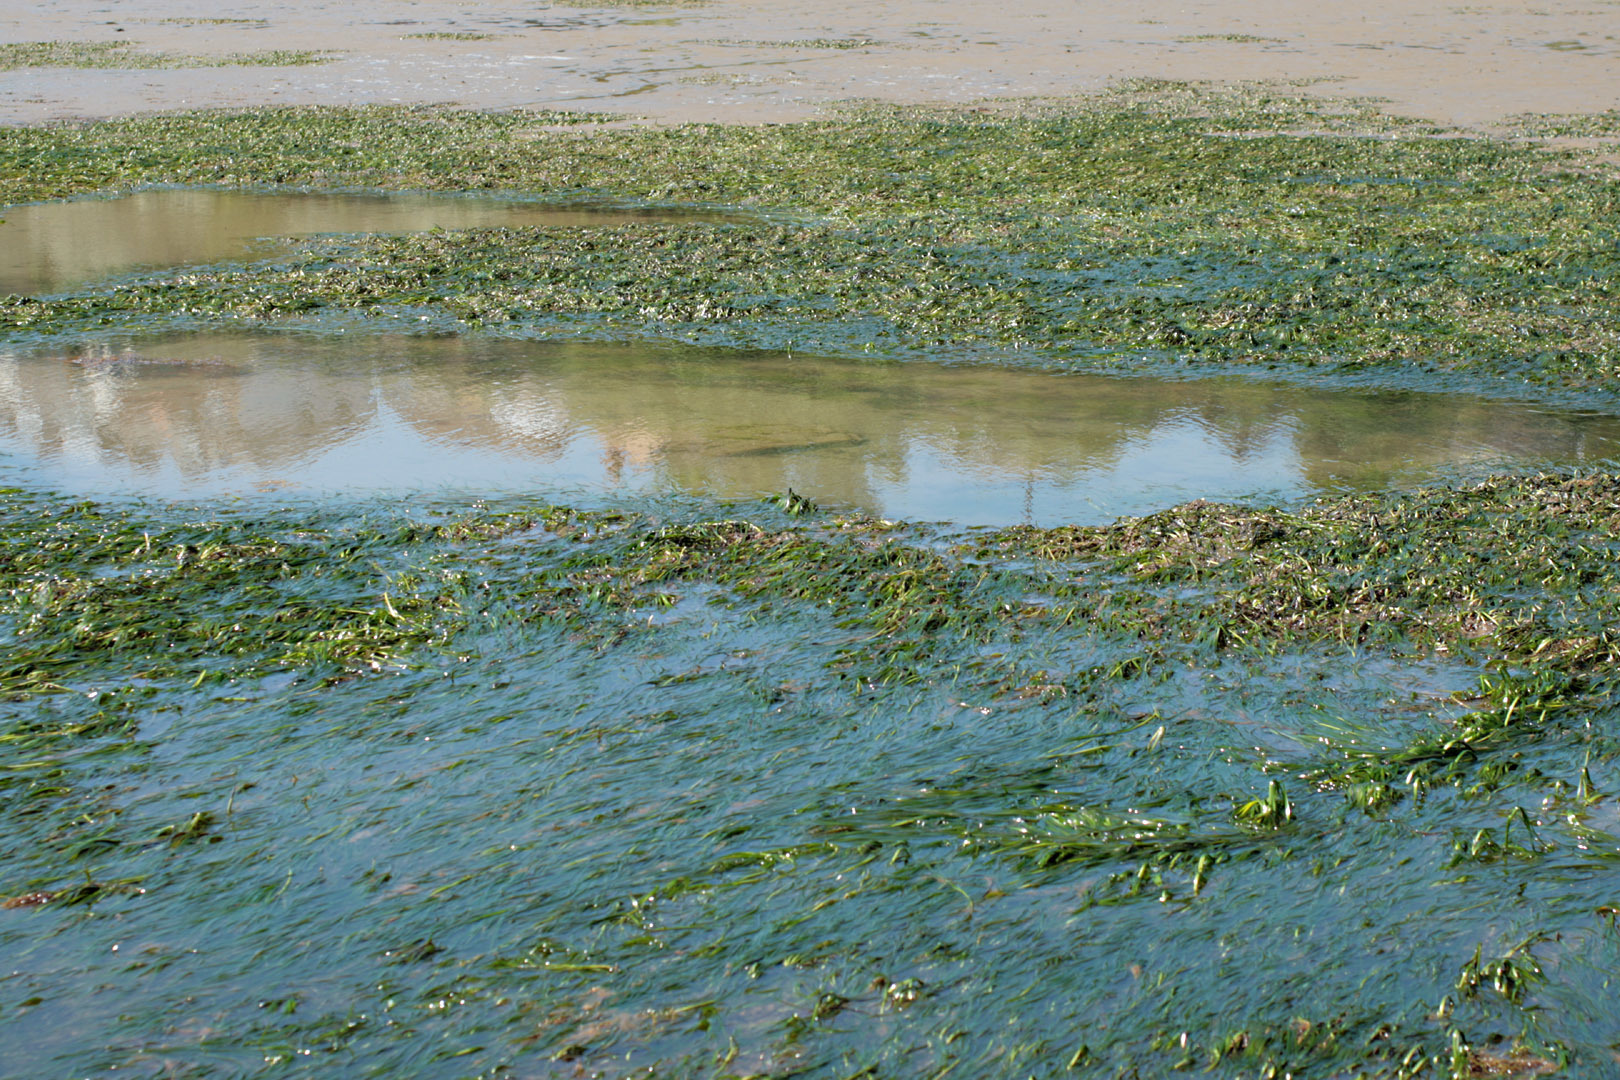 Image of Eelgrass